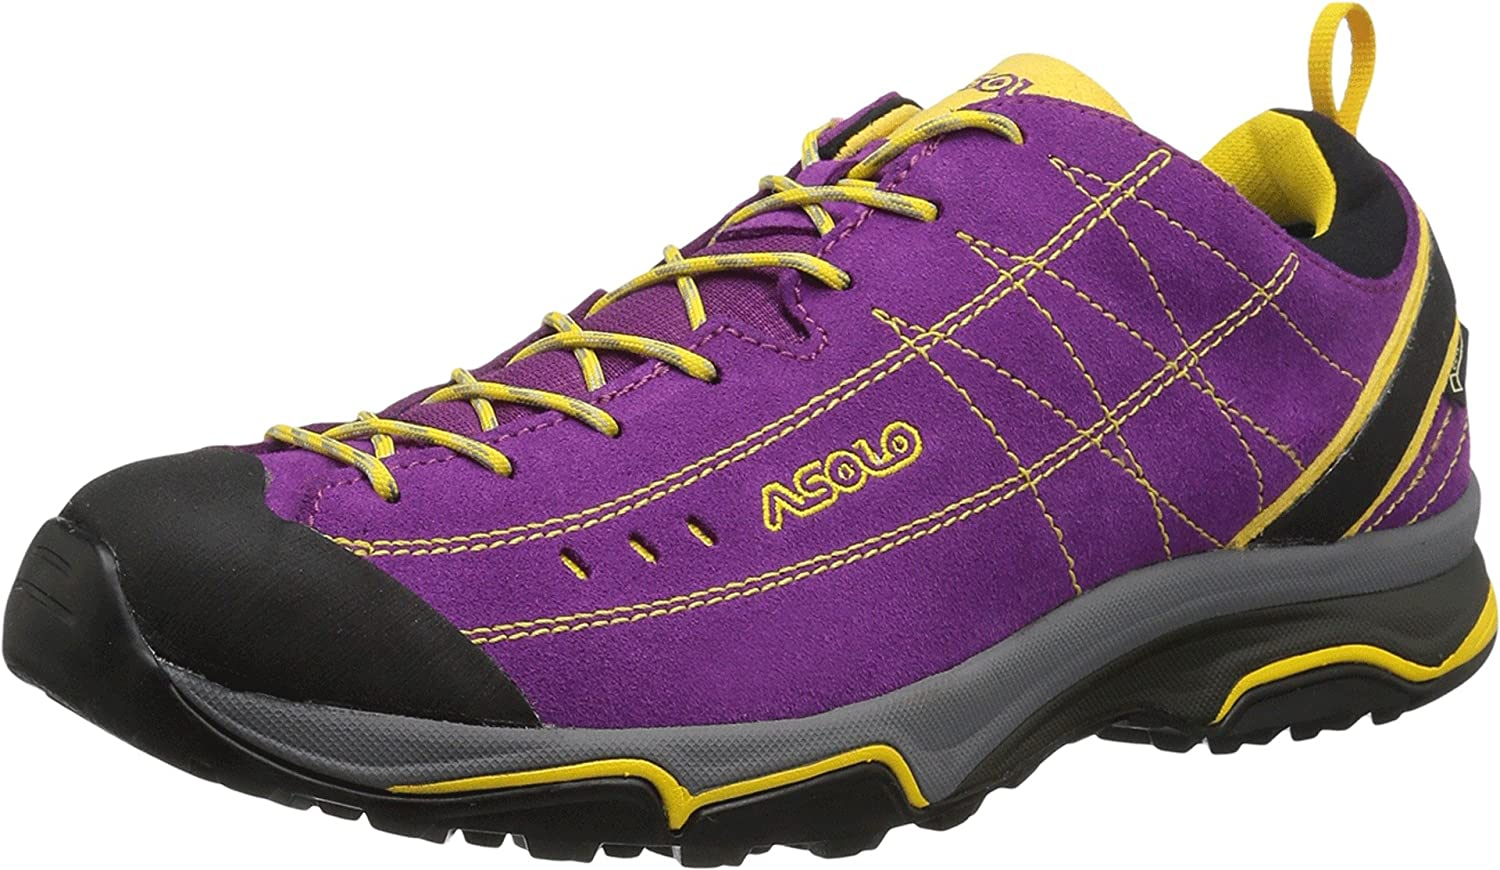 Asolo Women's Nucleon GV Hiking Shoes B01IFXJWWU 9 B(M) US|Verbena/Giallo